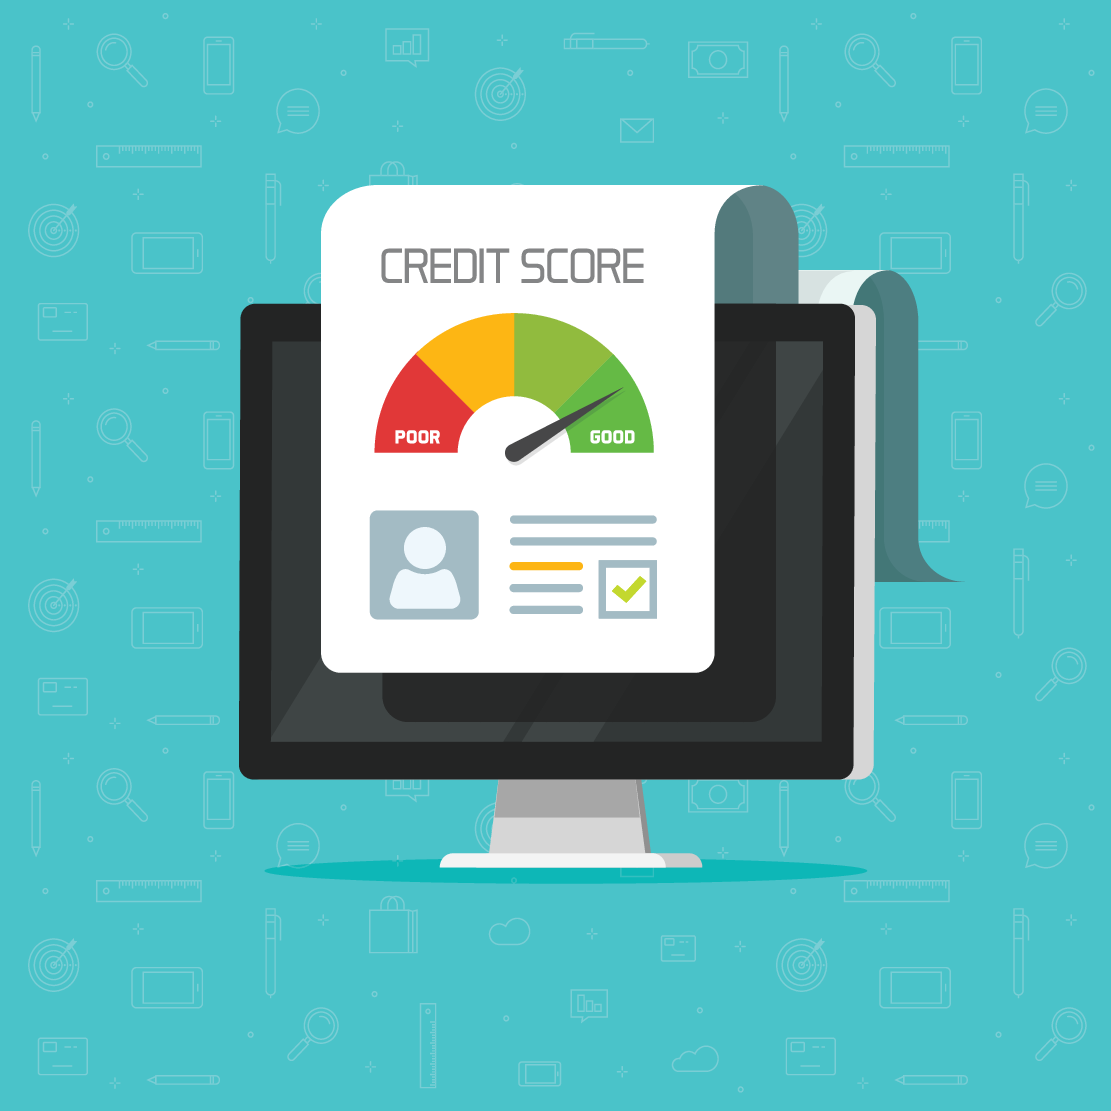 How Can I Build My Credit Score?